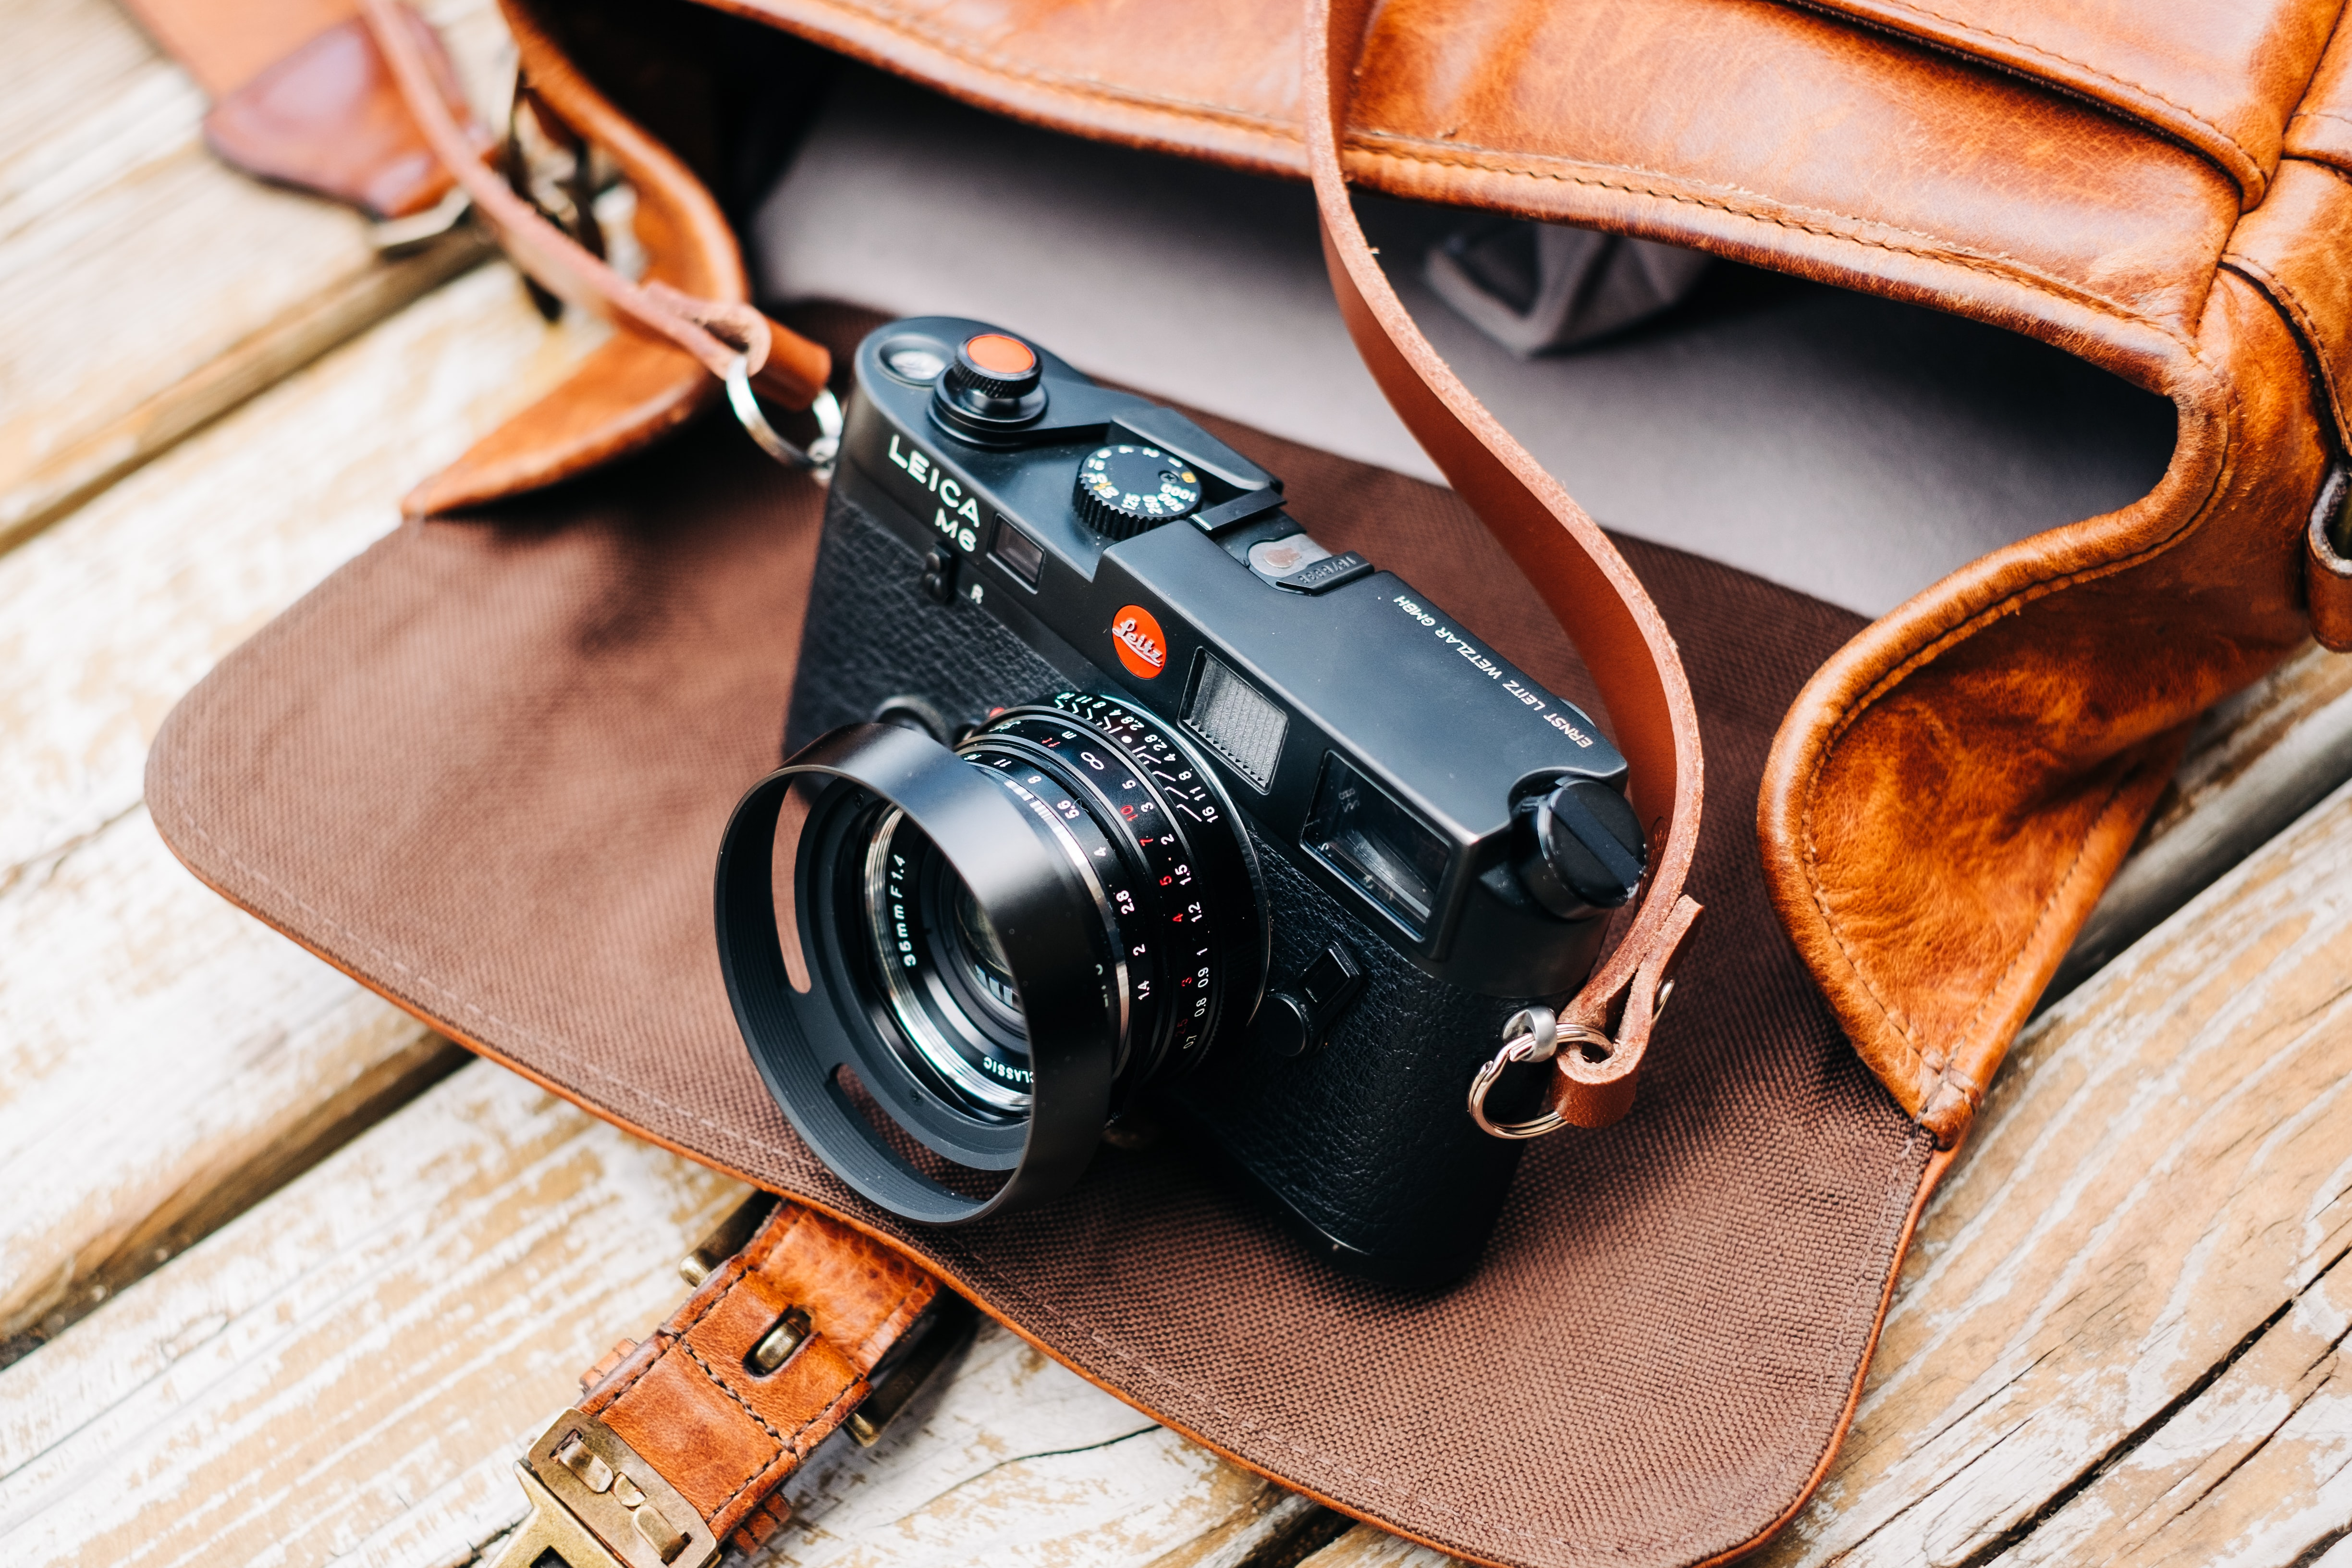 black DSLR camera with brown leather bag on brown surface